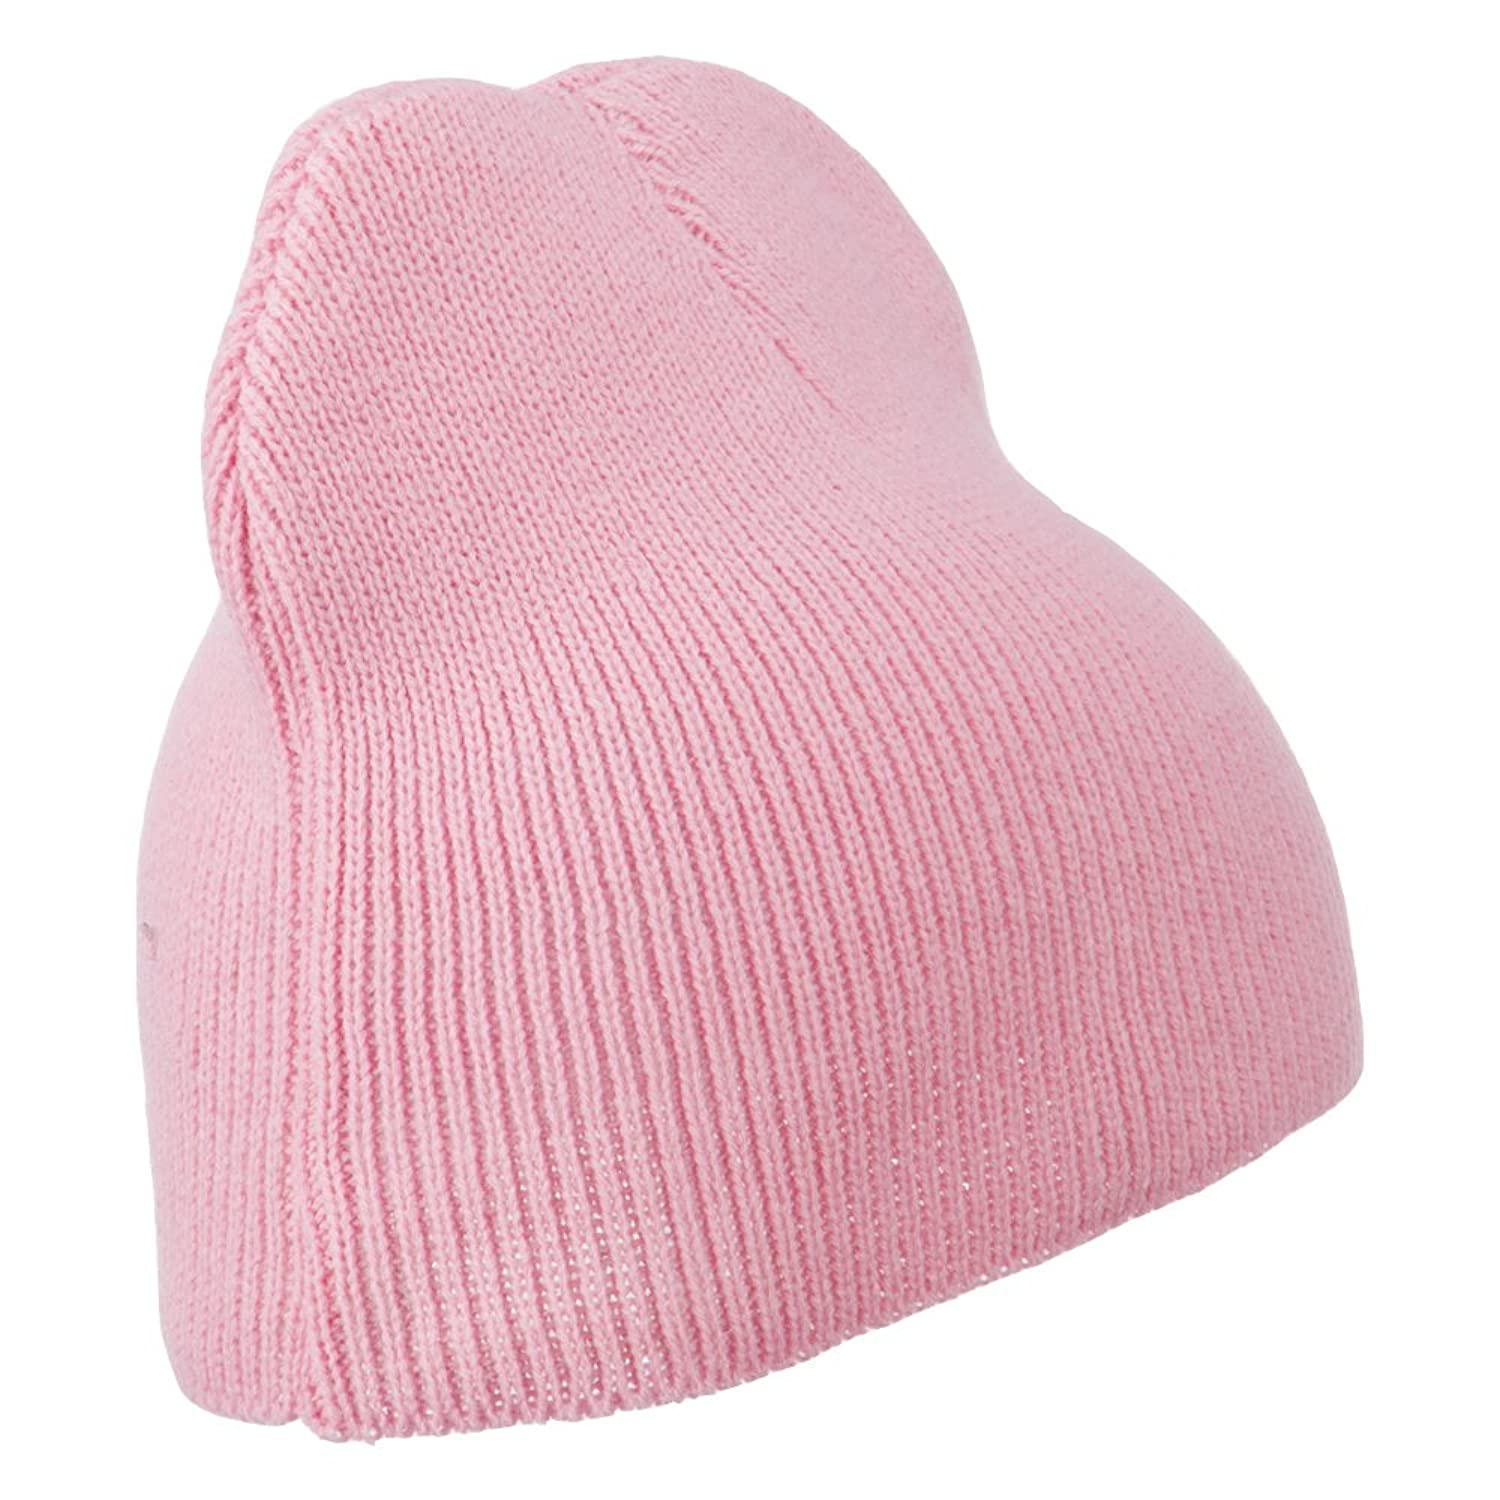 Acrylic Soft Knit Short Beanie - Pink